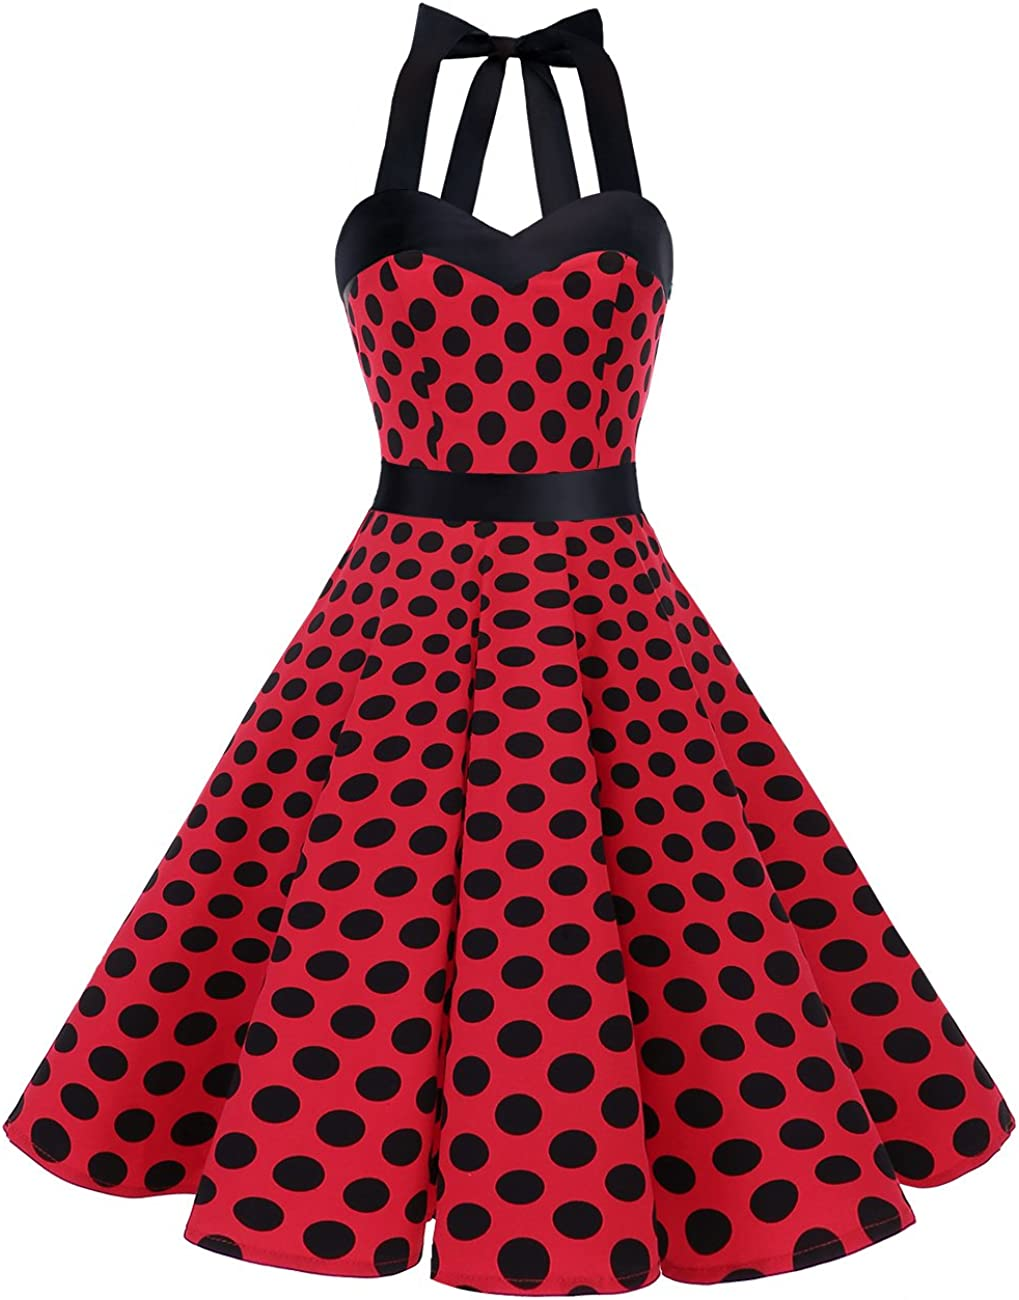 TALLA XS. Dresstells® Halter 50s Rockabilly Polka Dots Audrey Dress Retro Cocktail Dress Red Black Dot XS